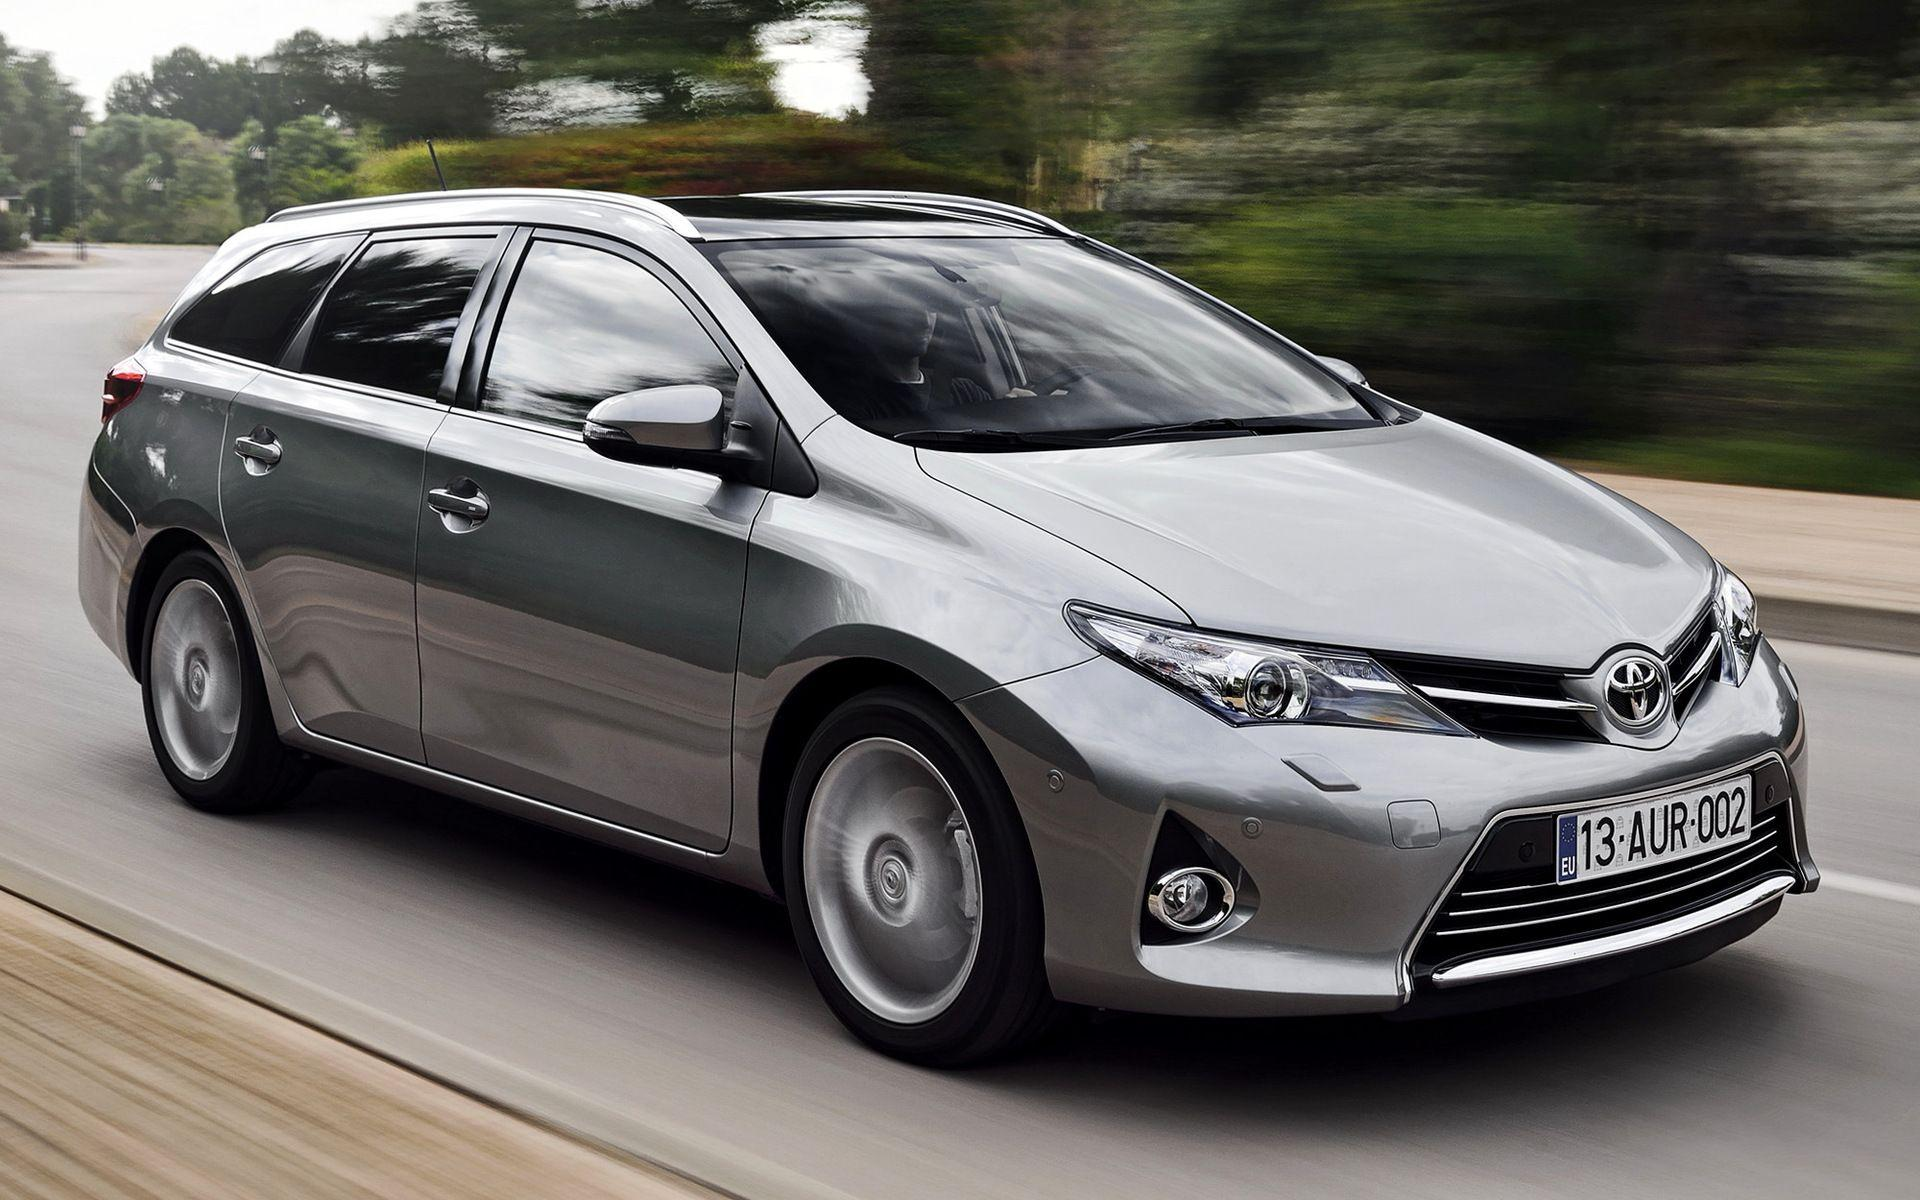 Toyota Auris Touring Sports (2013) Wallpapers and HD Images - Car Pixel